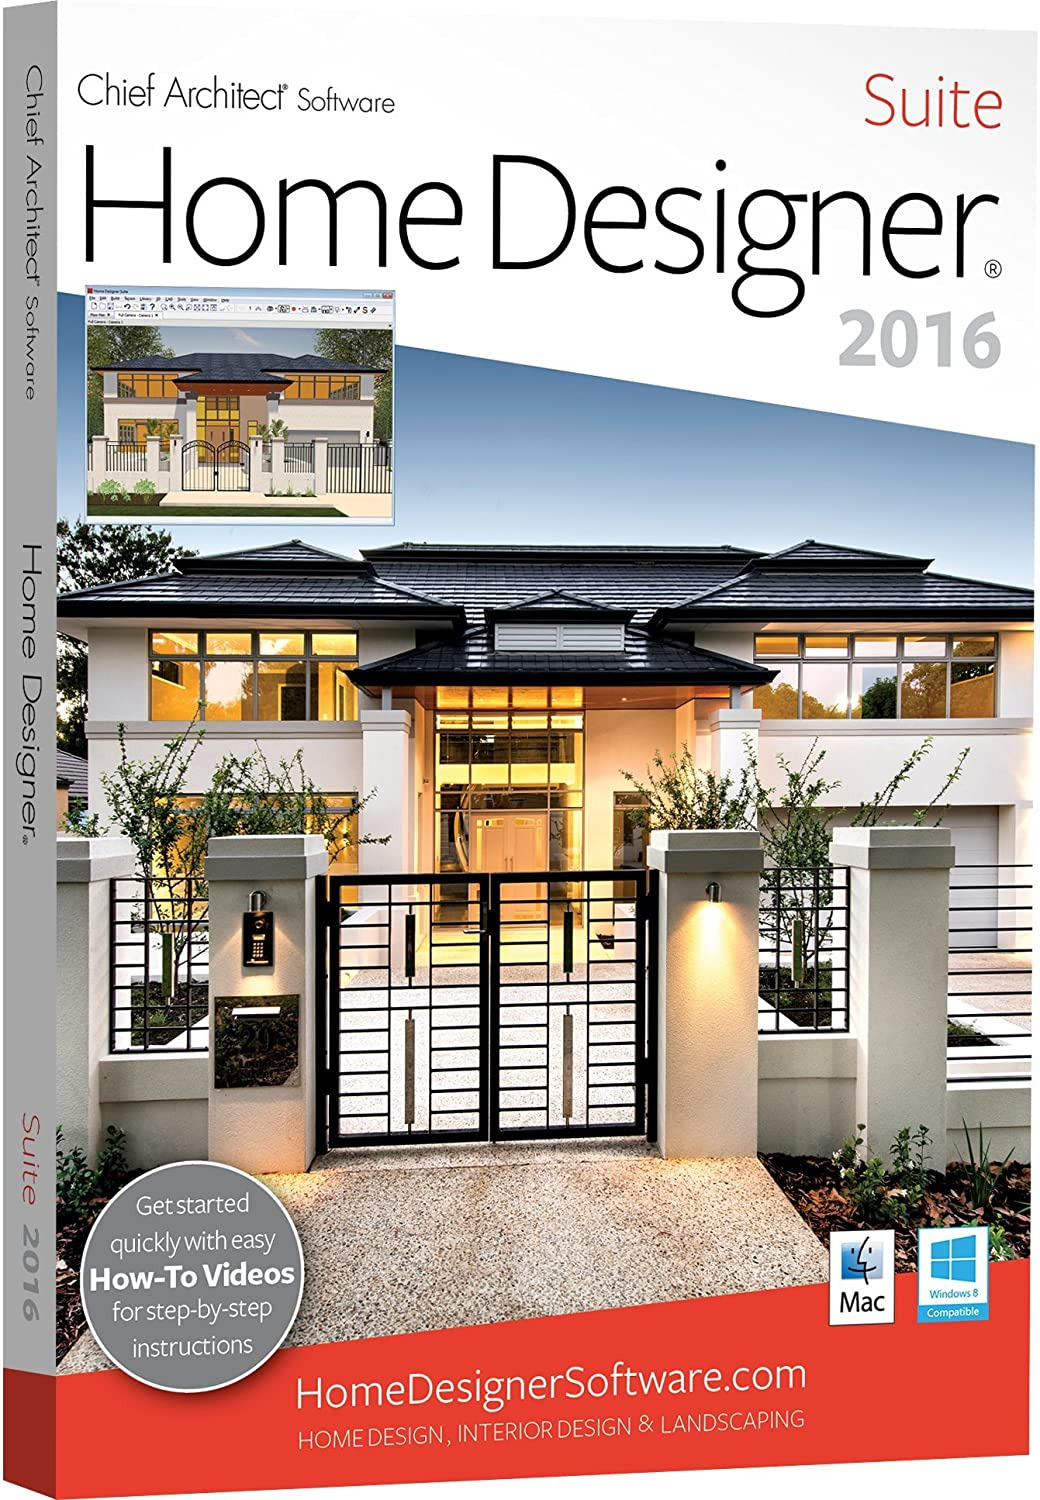 Easy House Plan software New Chief Architect Home Designer Suite 2016